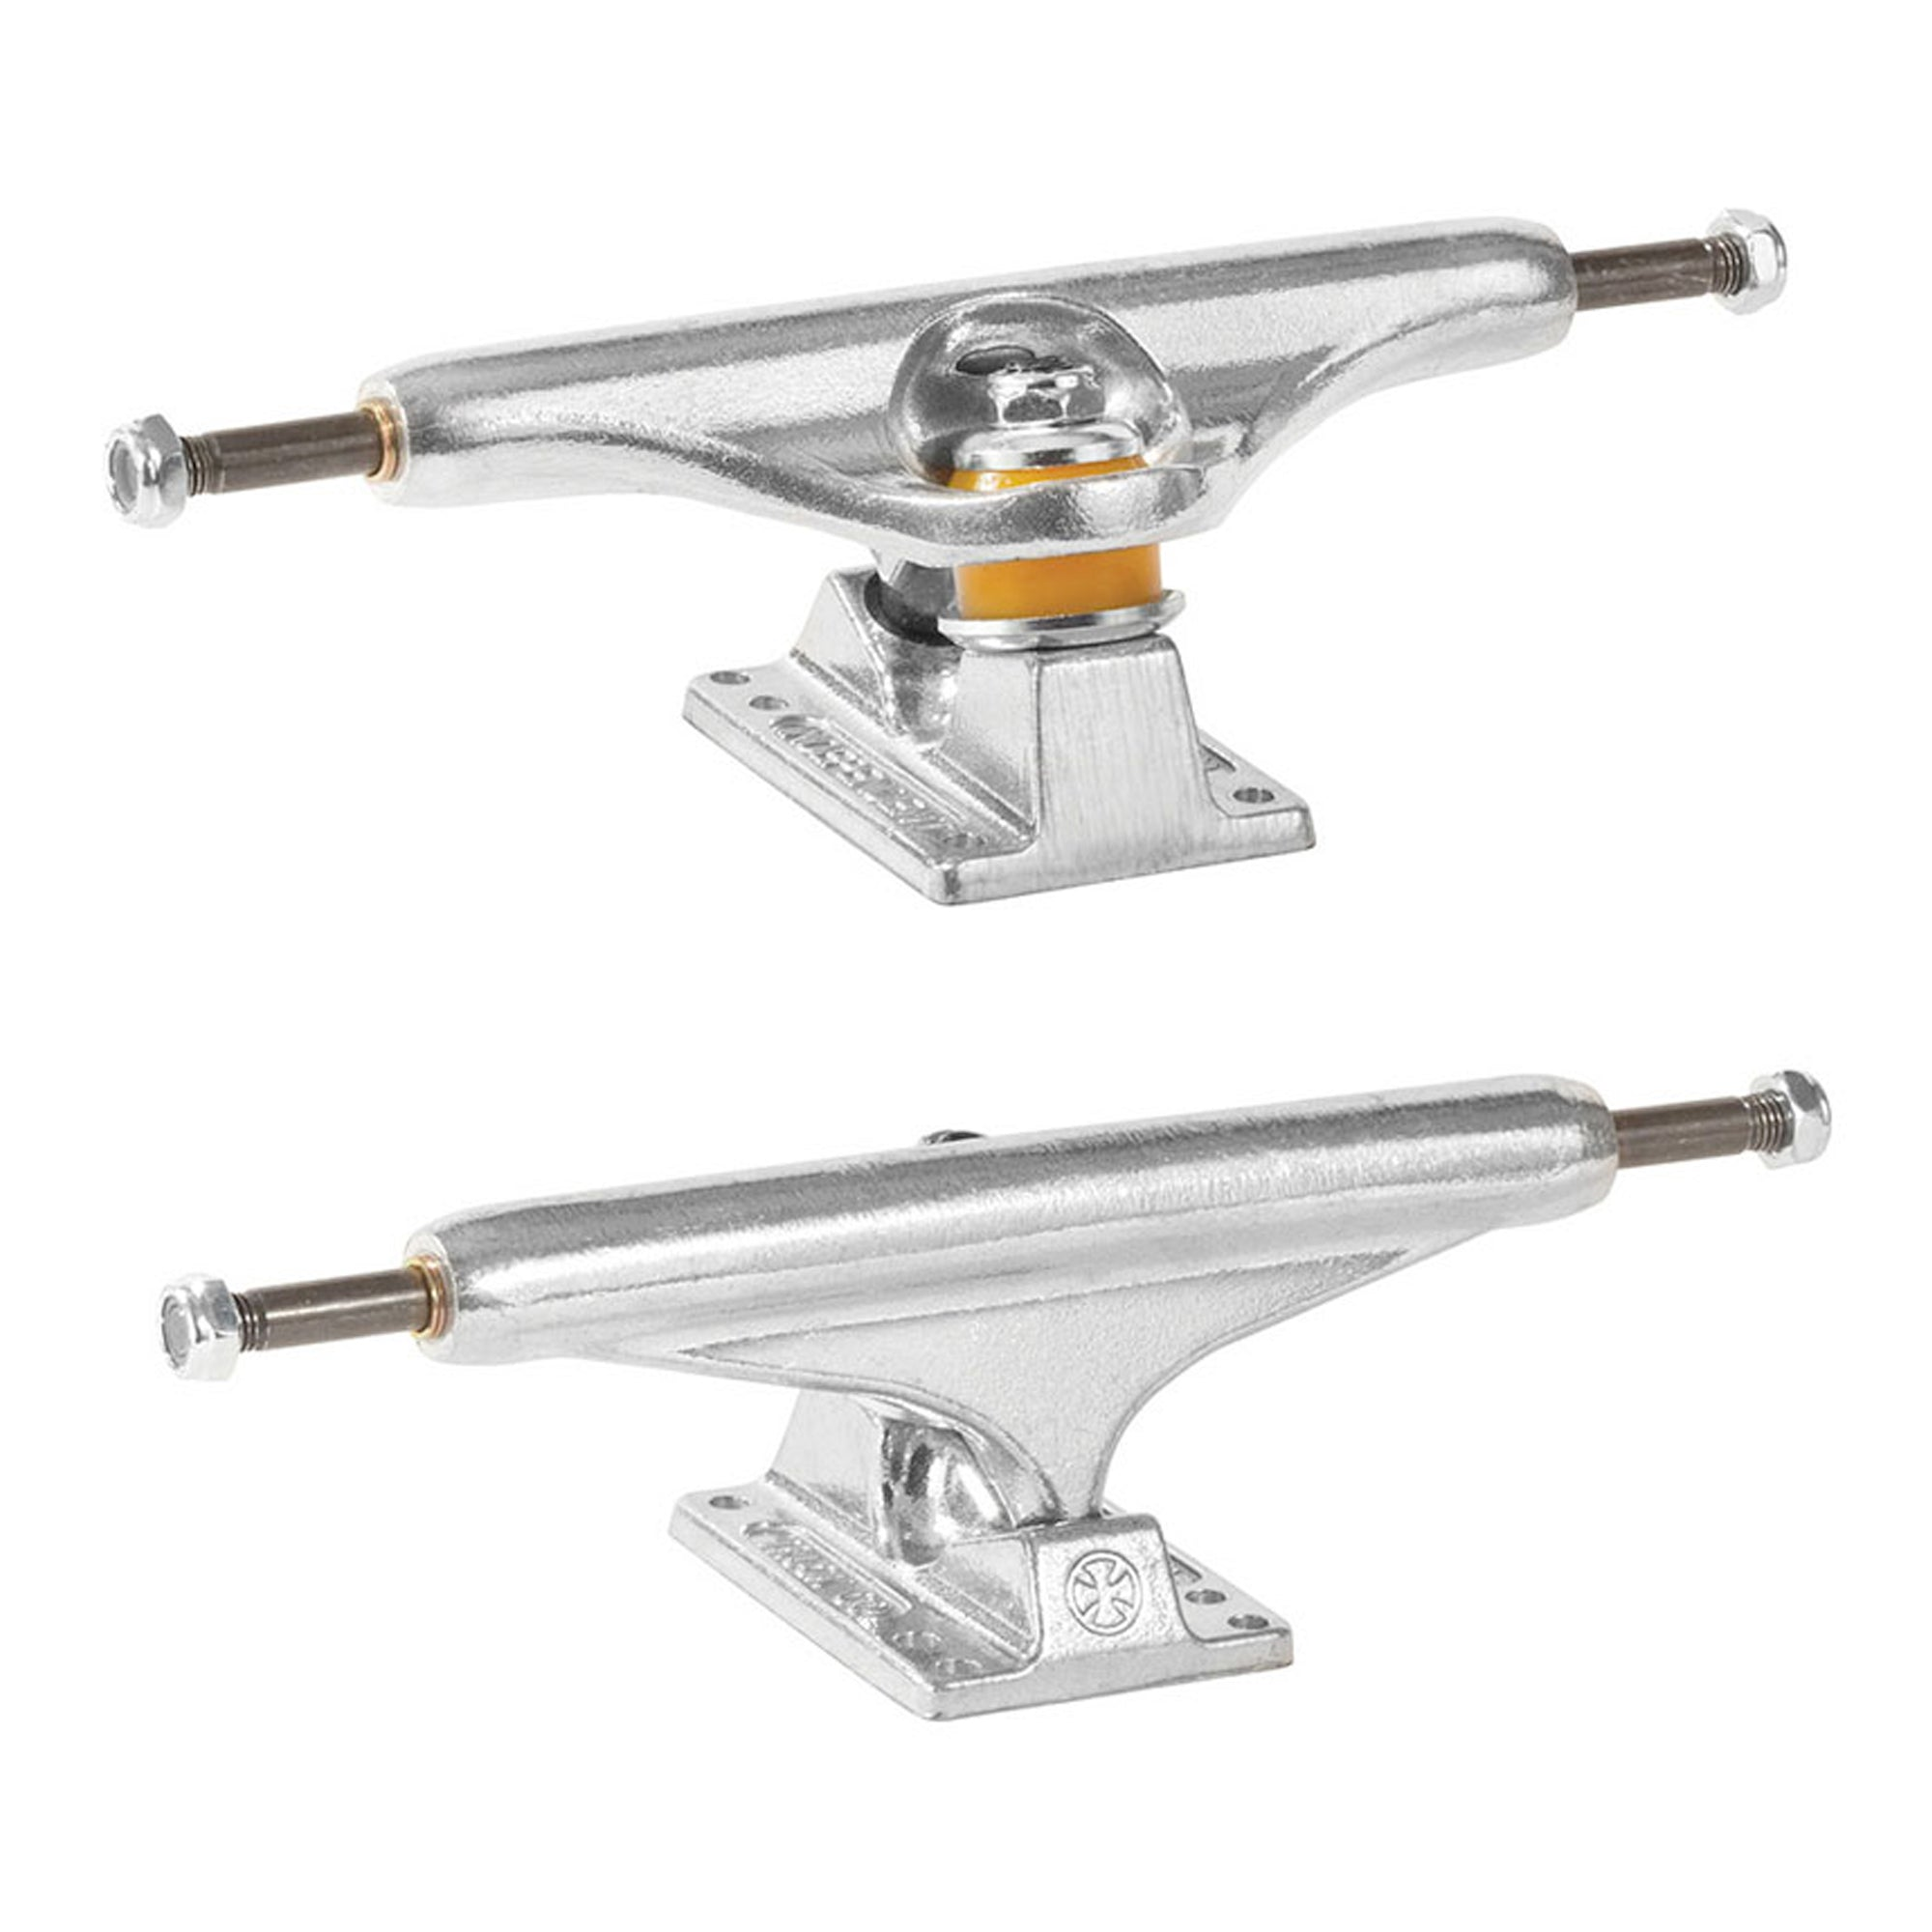 Independent Stage 11 Forged Titanium 149mm Skateboard Trucks